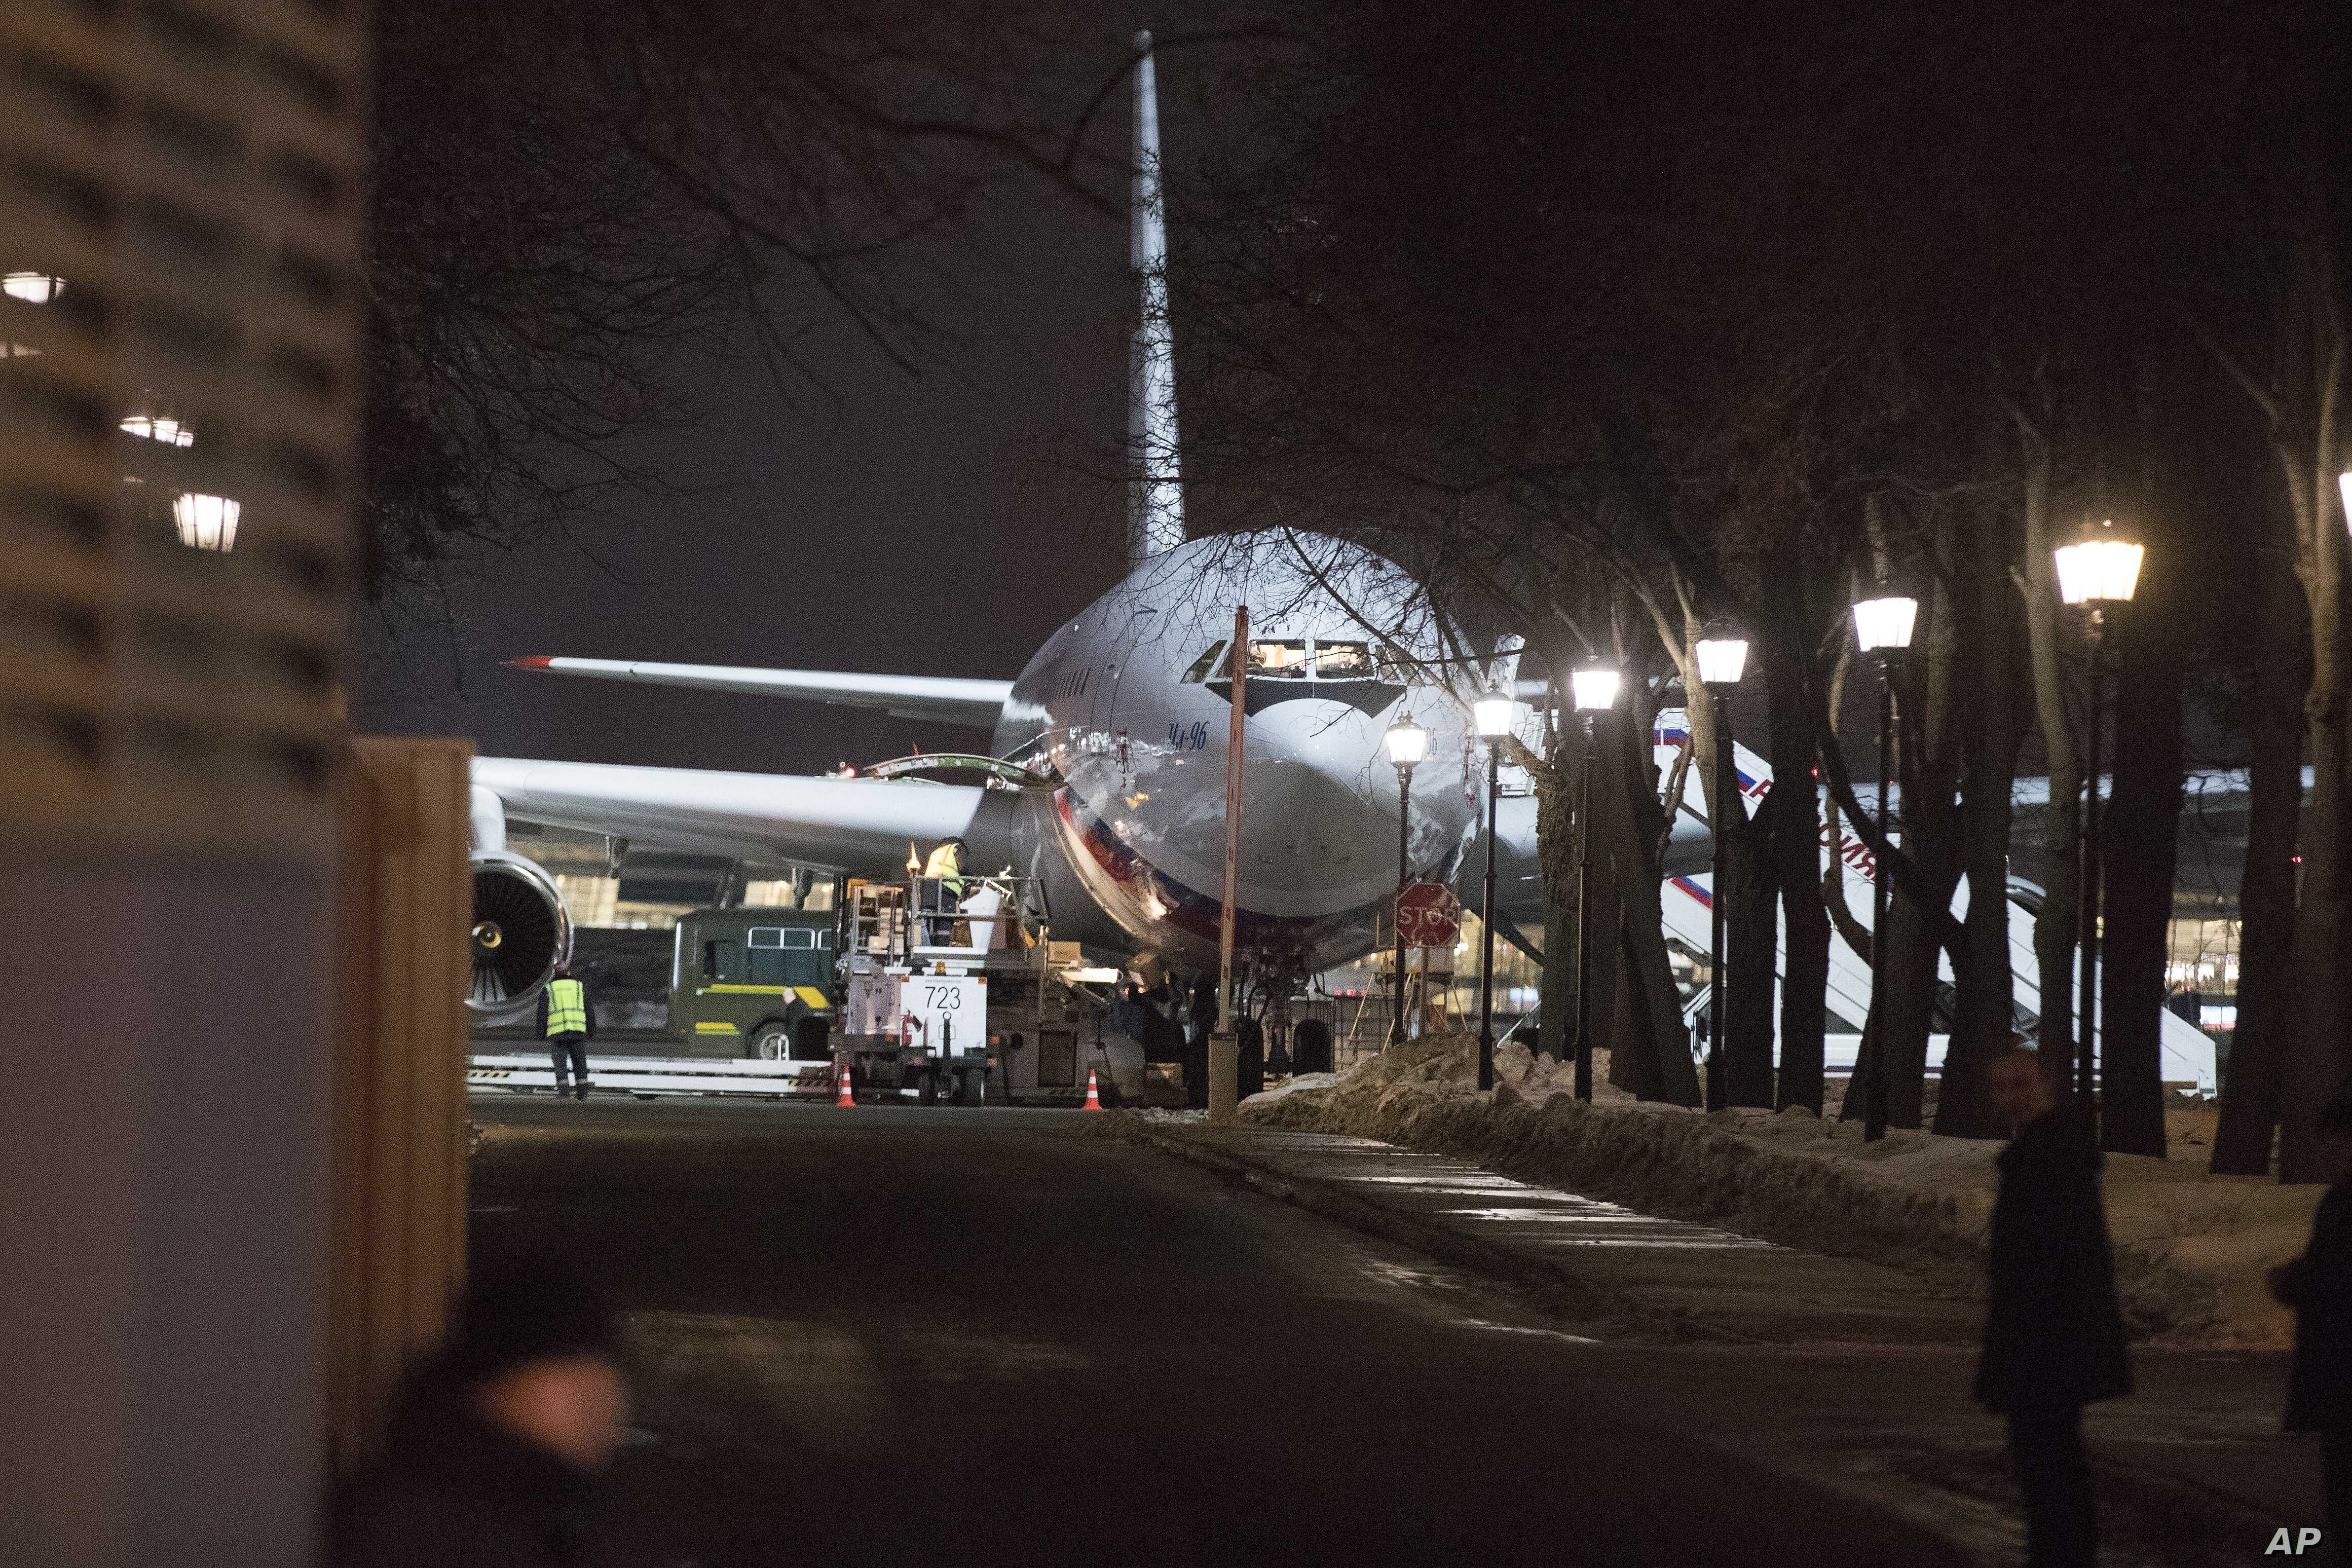 A plane that carried Russian diplomats and their families home, having been ordered to leave Britain as part of a standoff over a nerve agent attack on British soil, sits at the Vnukovo 2 government airport outside Moscow, March 20, 2018.